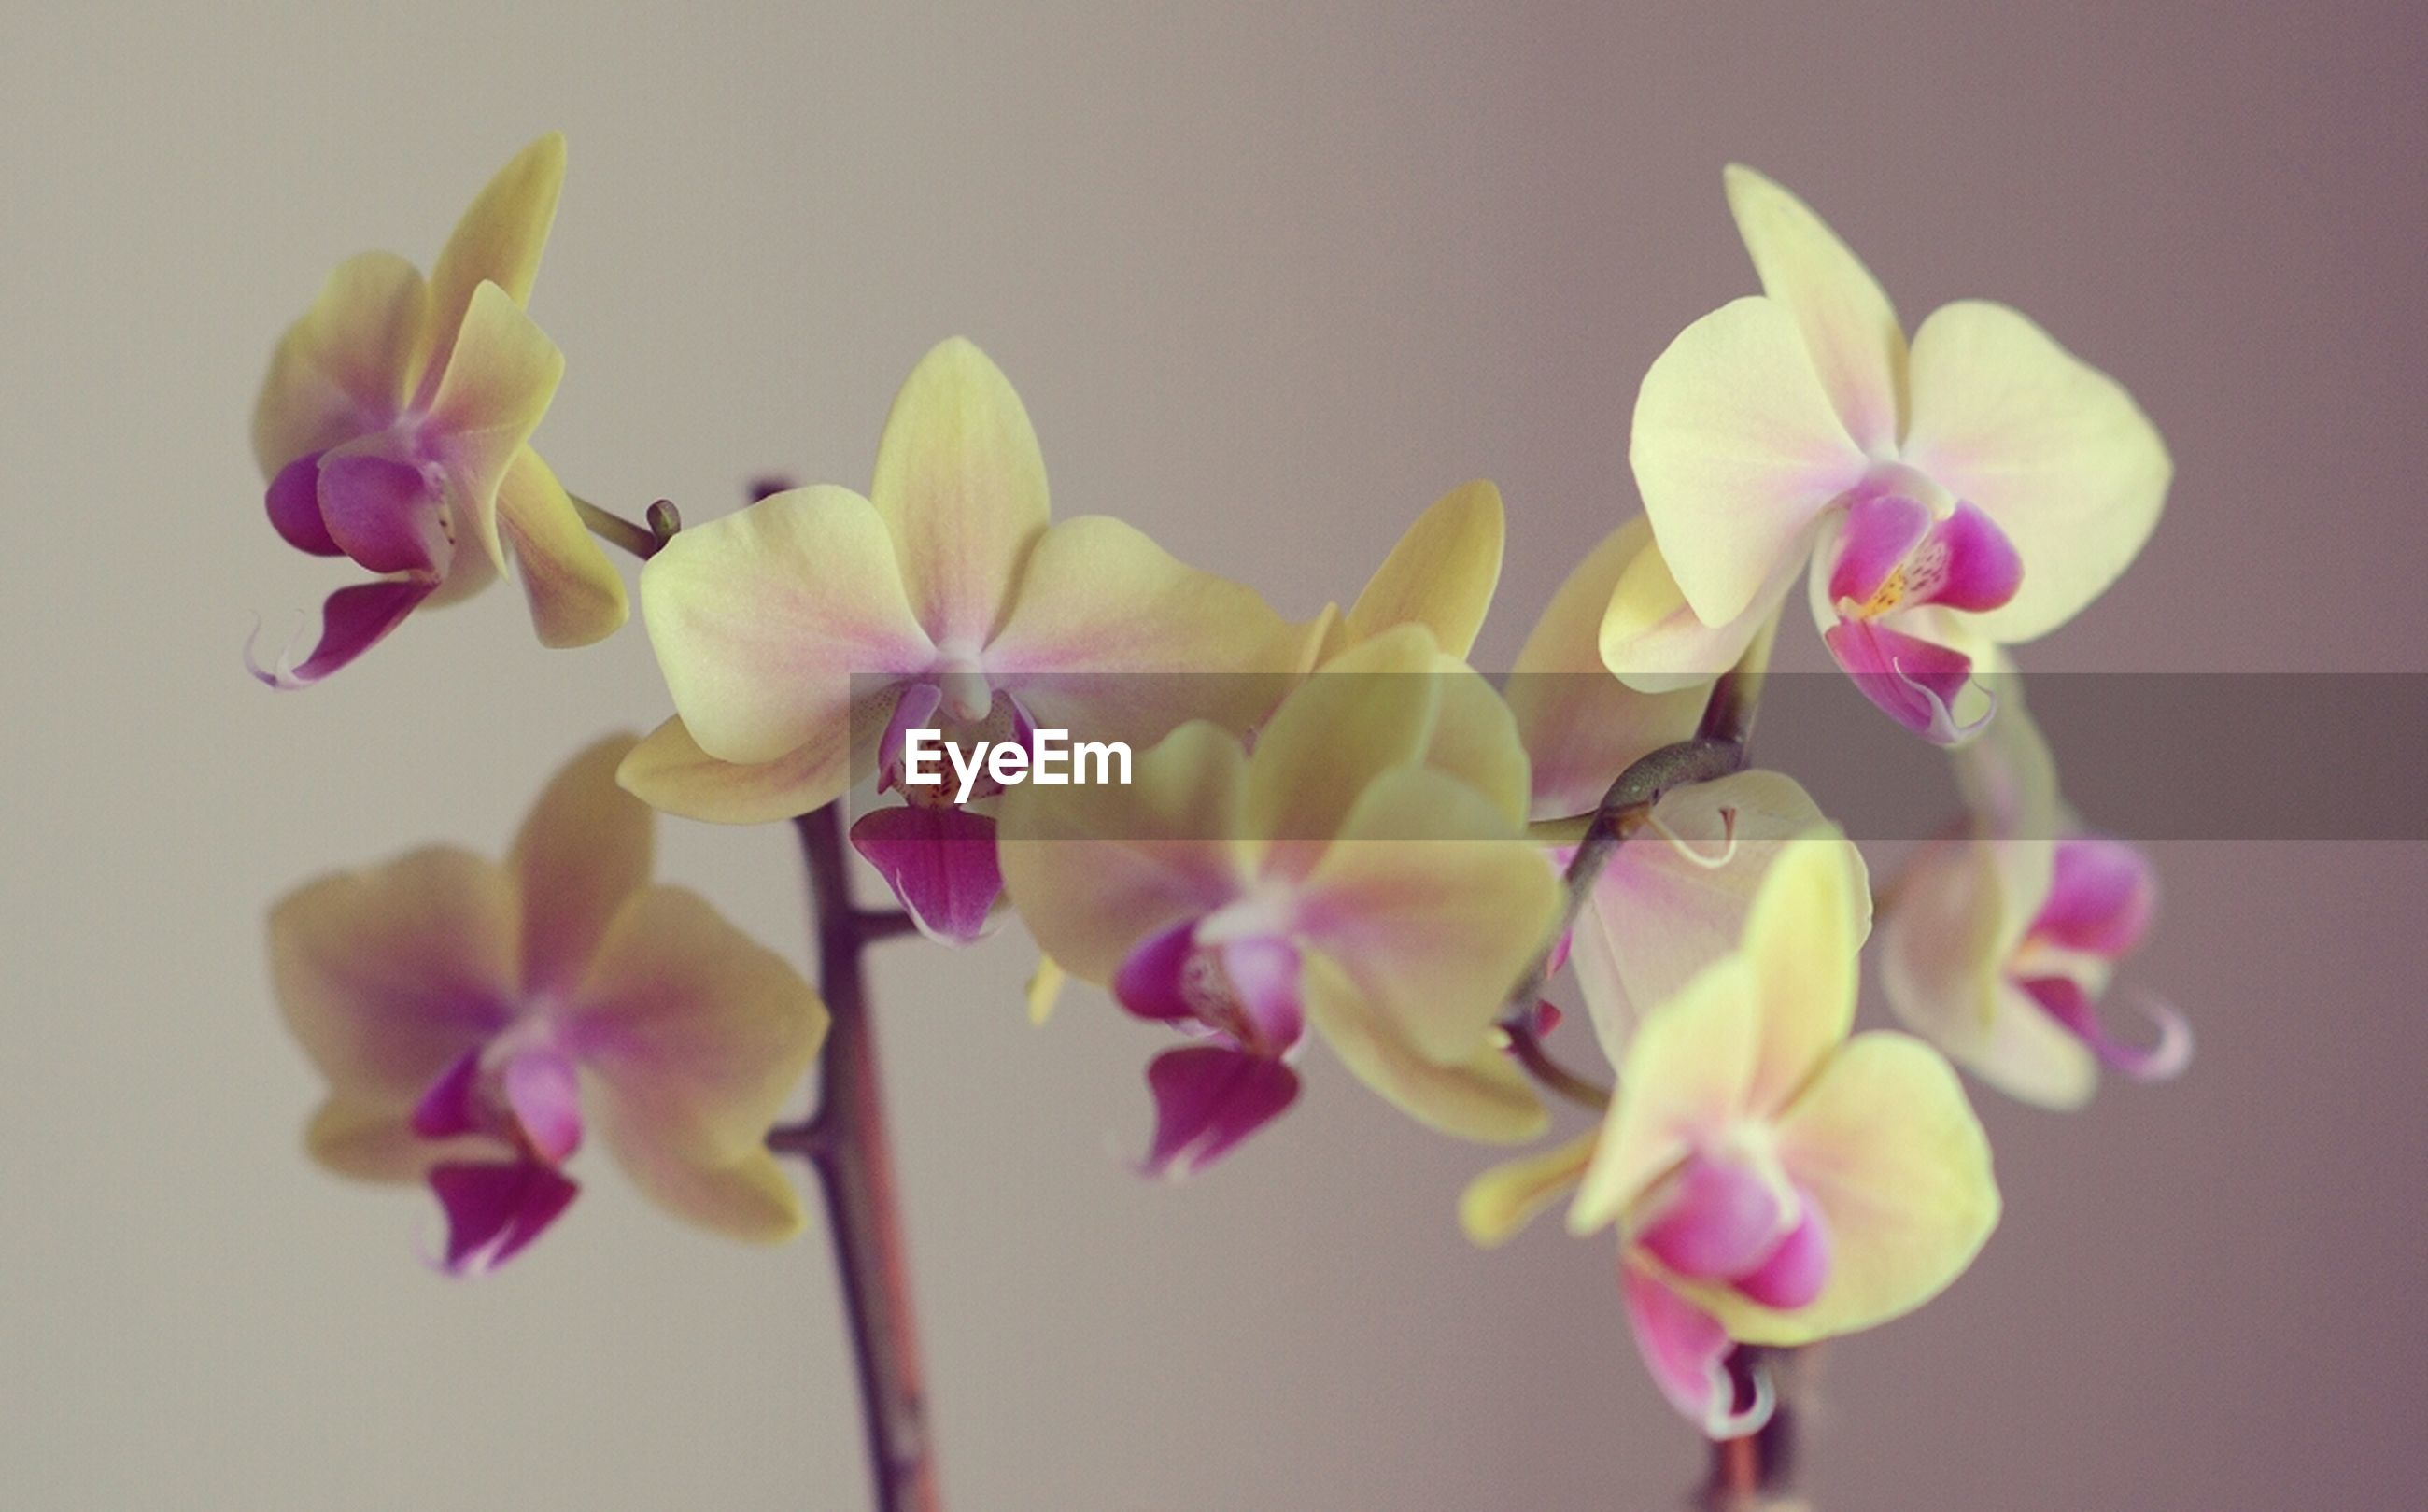 flower, petal, freshness, fragility, flower head, beauty in nature, close-up, orchid, nature, growth, indoors, pink color, stem, focus on foreground, blooming, blossom, bud, no people, white color, selective focus